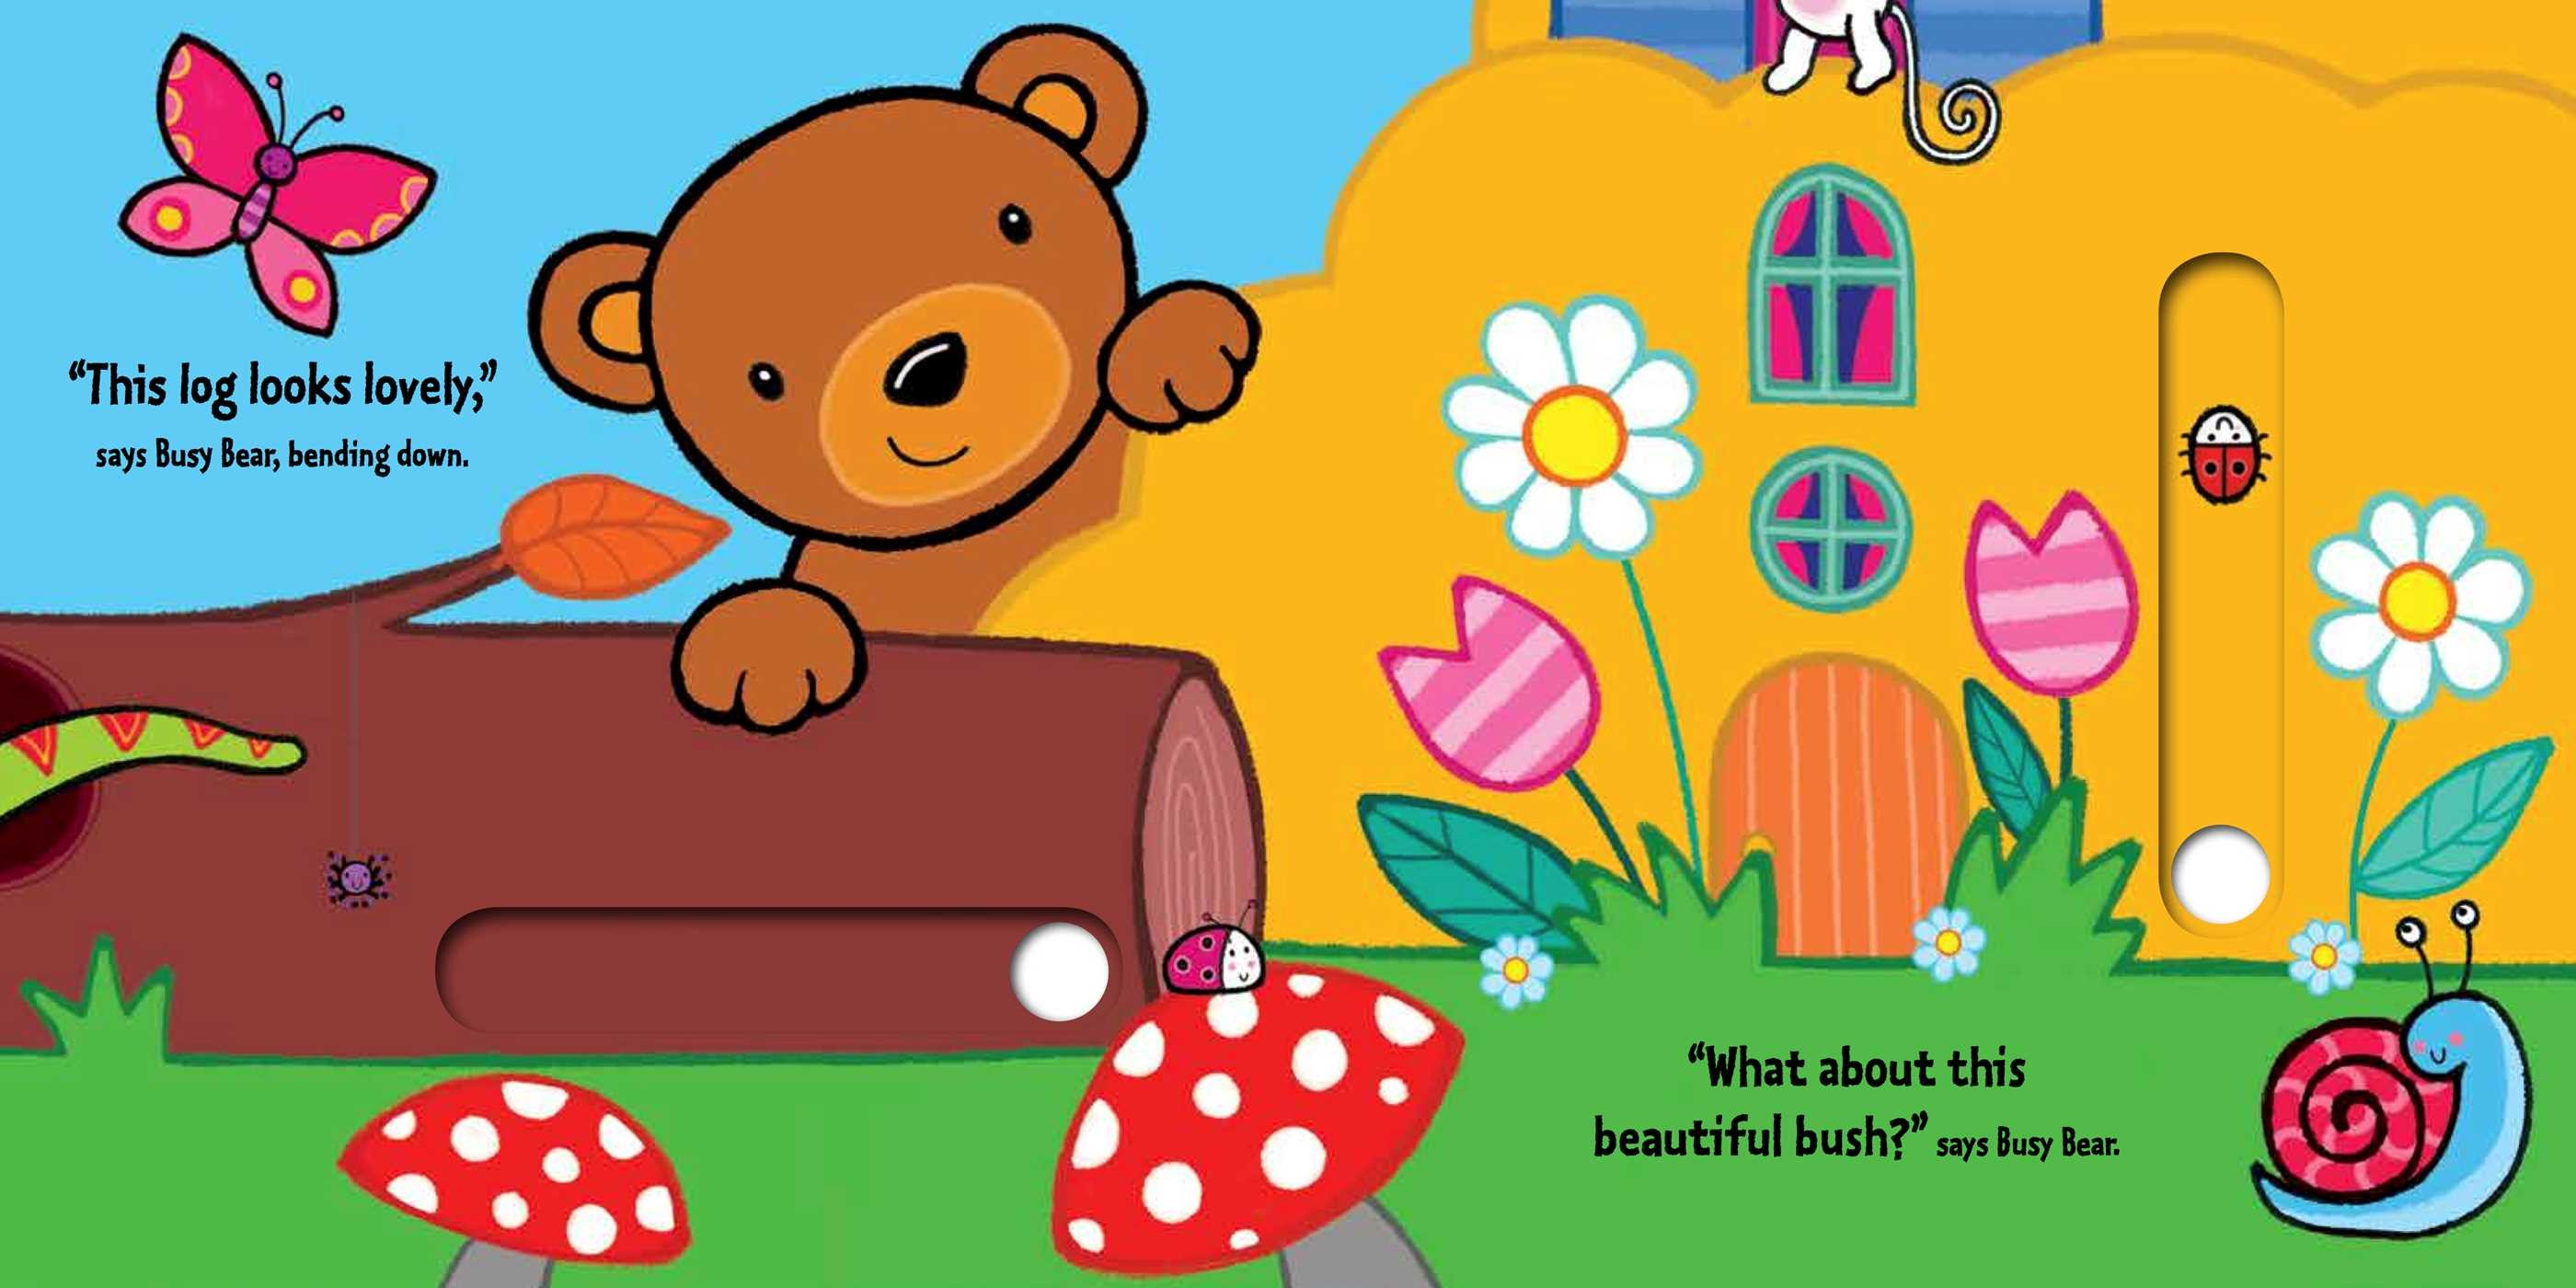 Busy bear s new home 9781499804058.in03